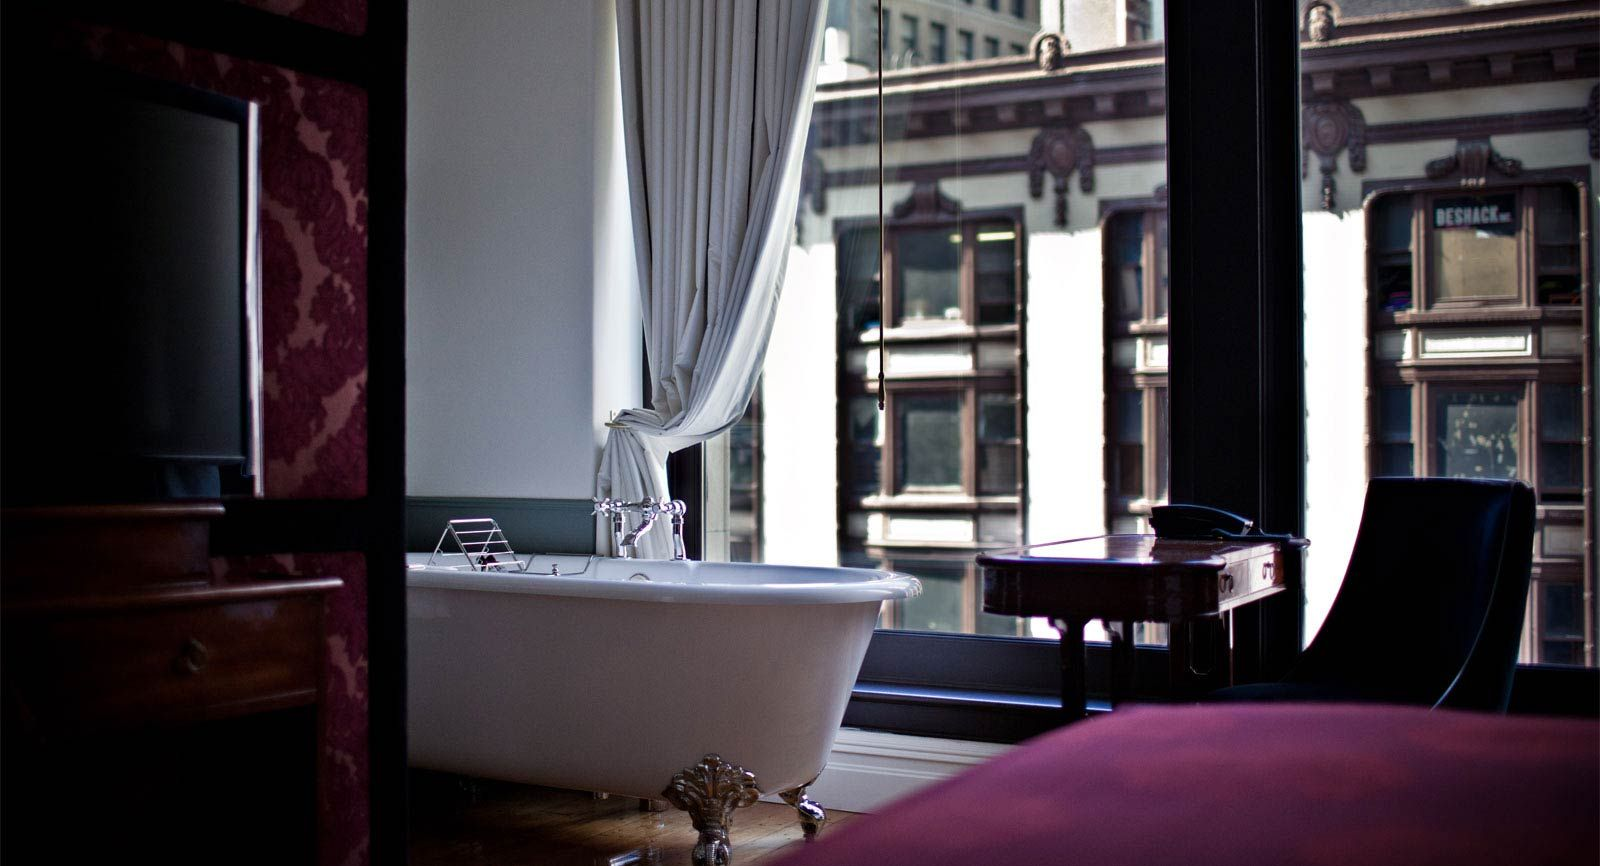 The Nomad Hotel New York City Luxury Hotels Midtown Manhattan